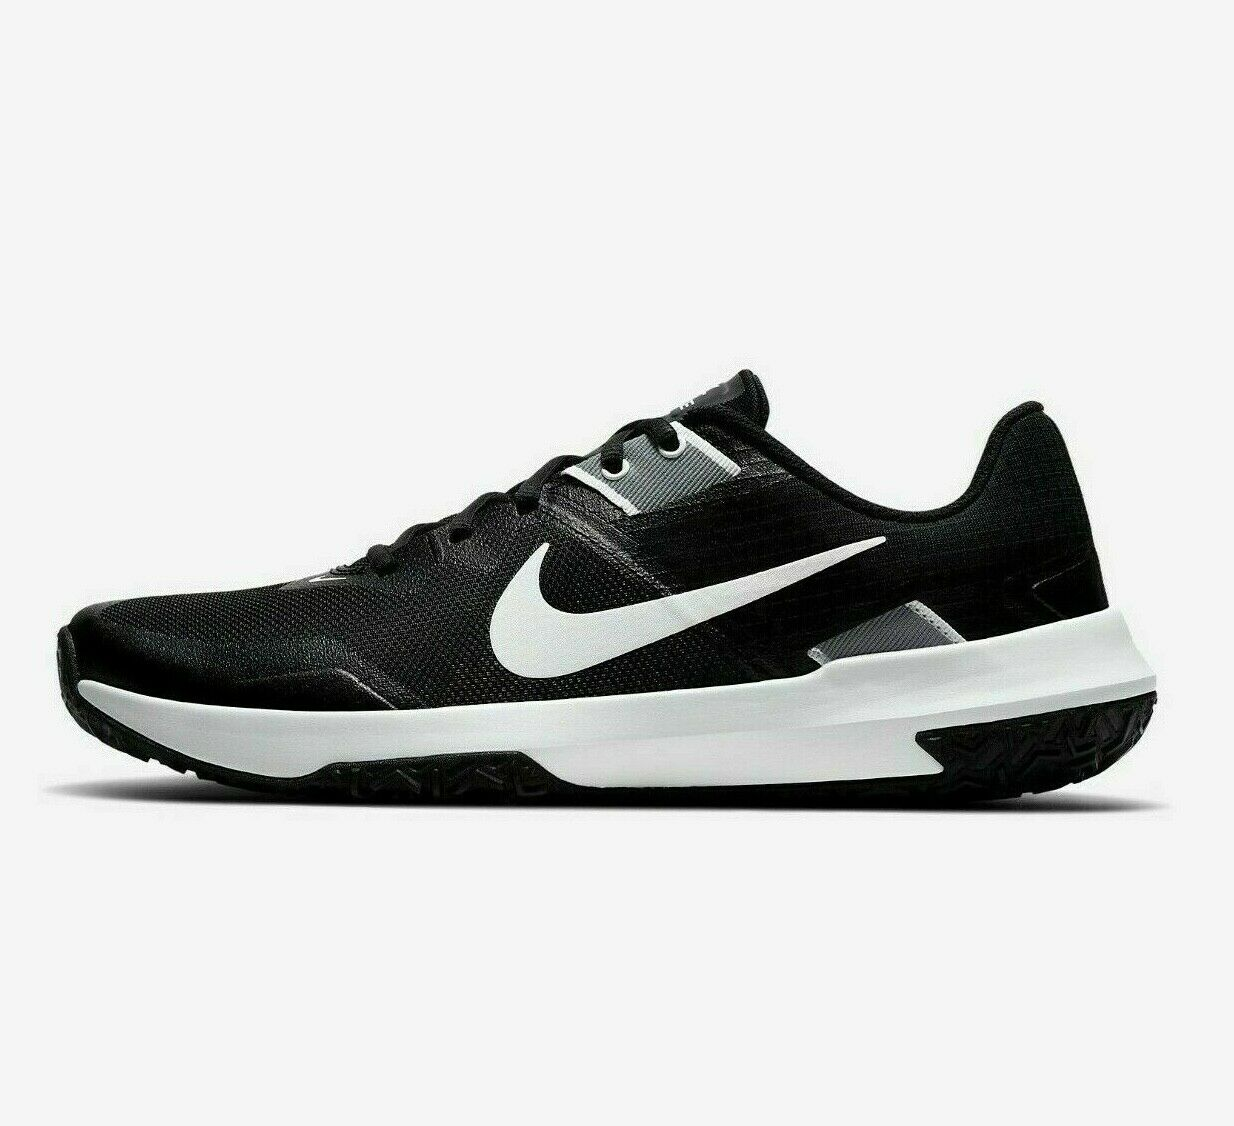 Nike Varsity Compete TR Shoes for Men